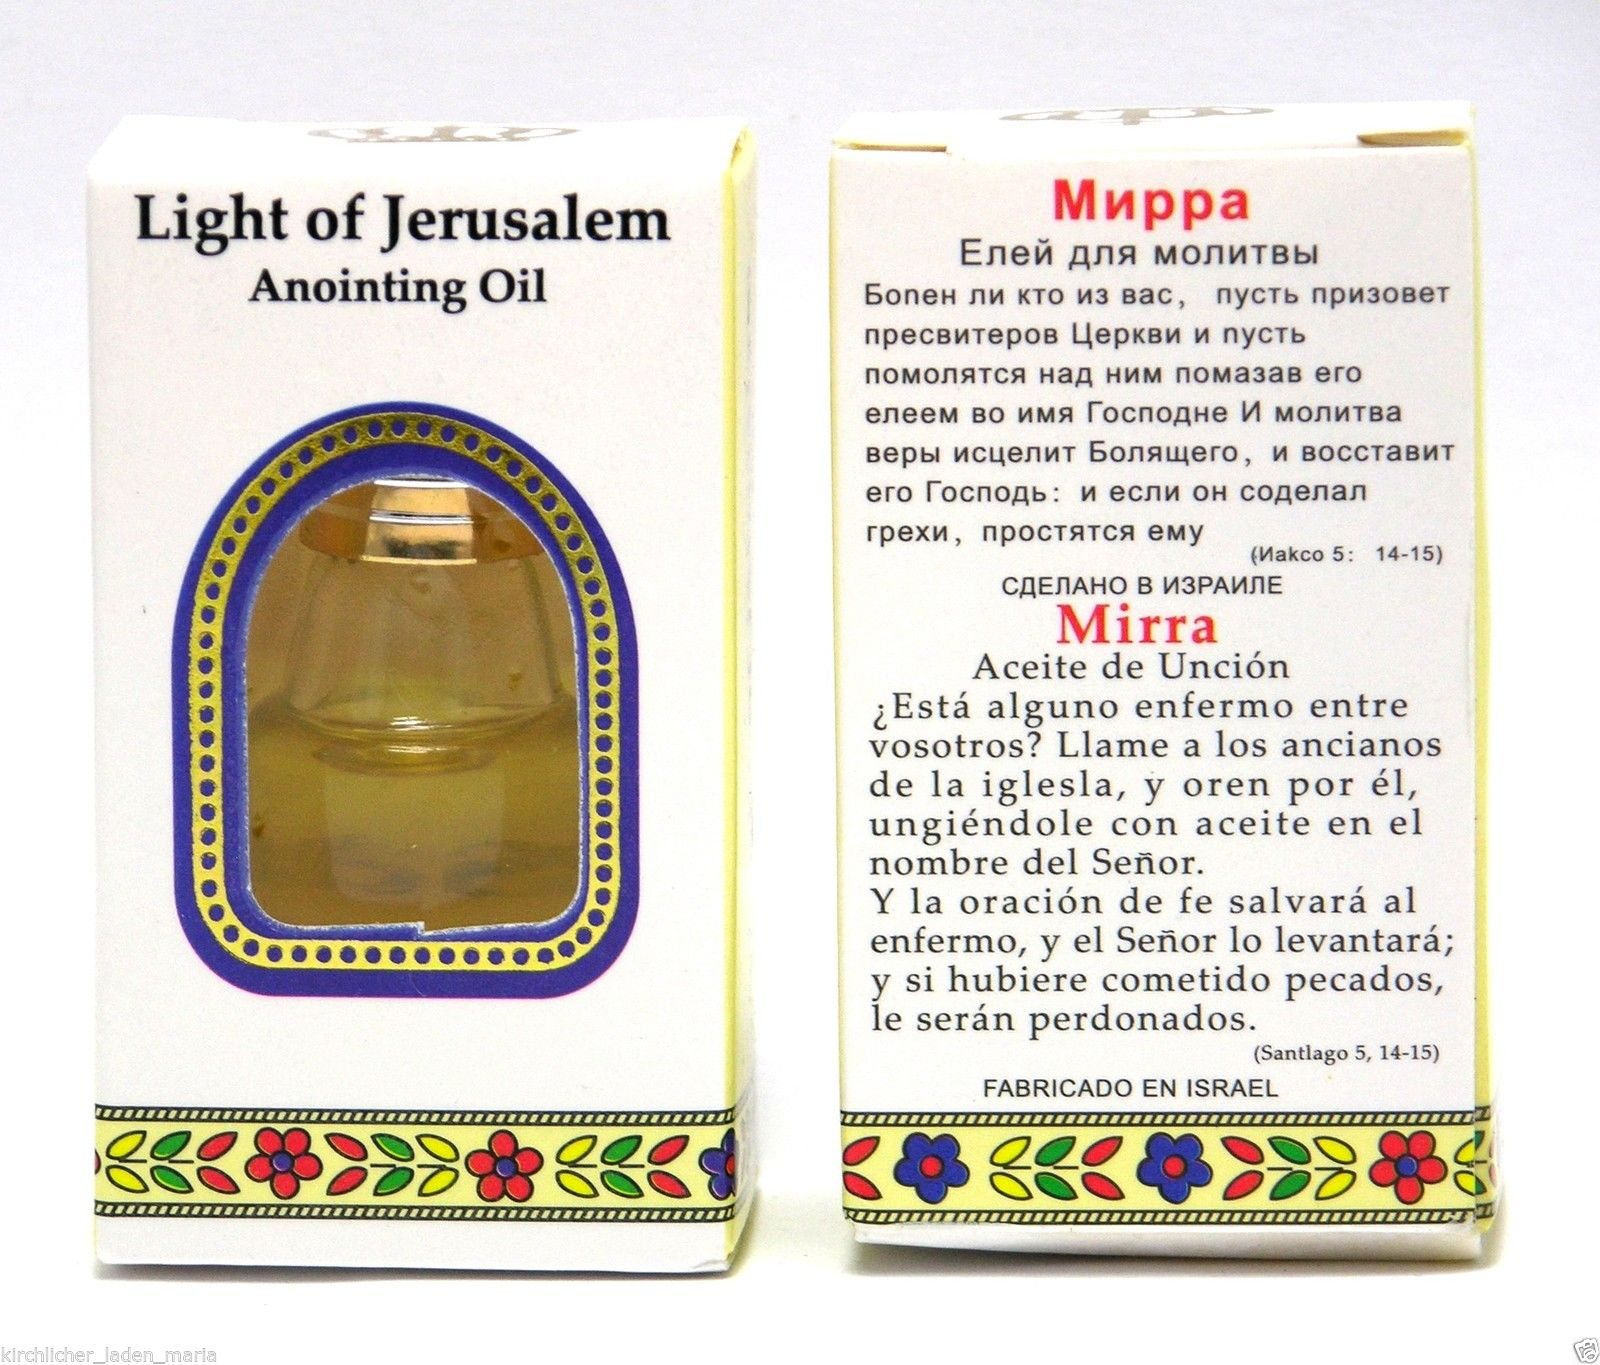 Oil sanctified at the Holy Sepulchre in Jerusalem, 5ml